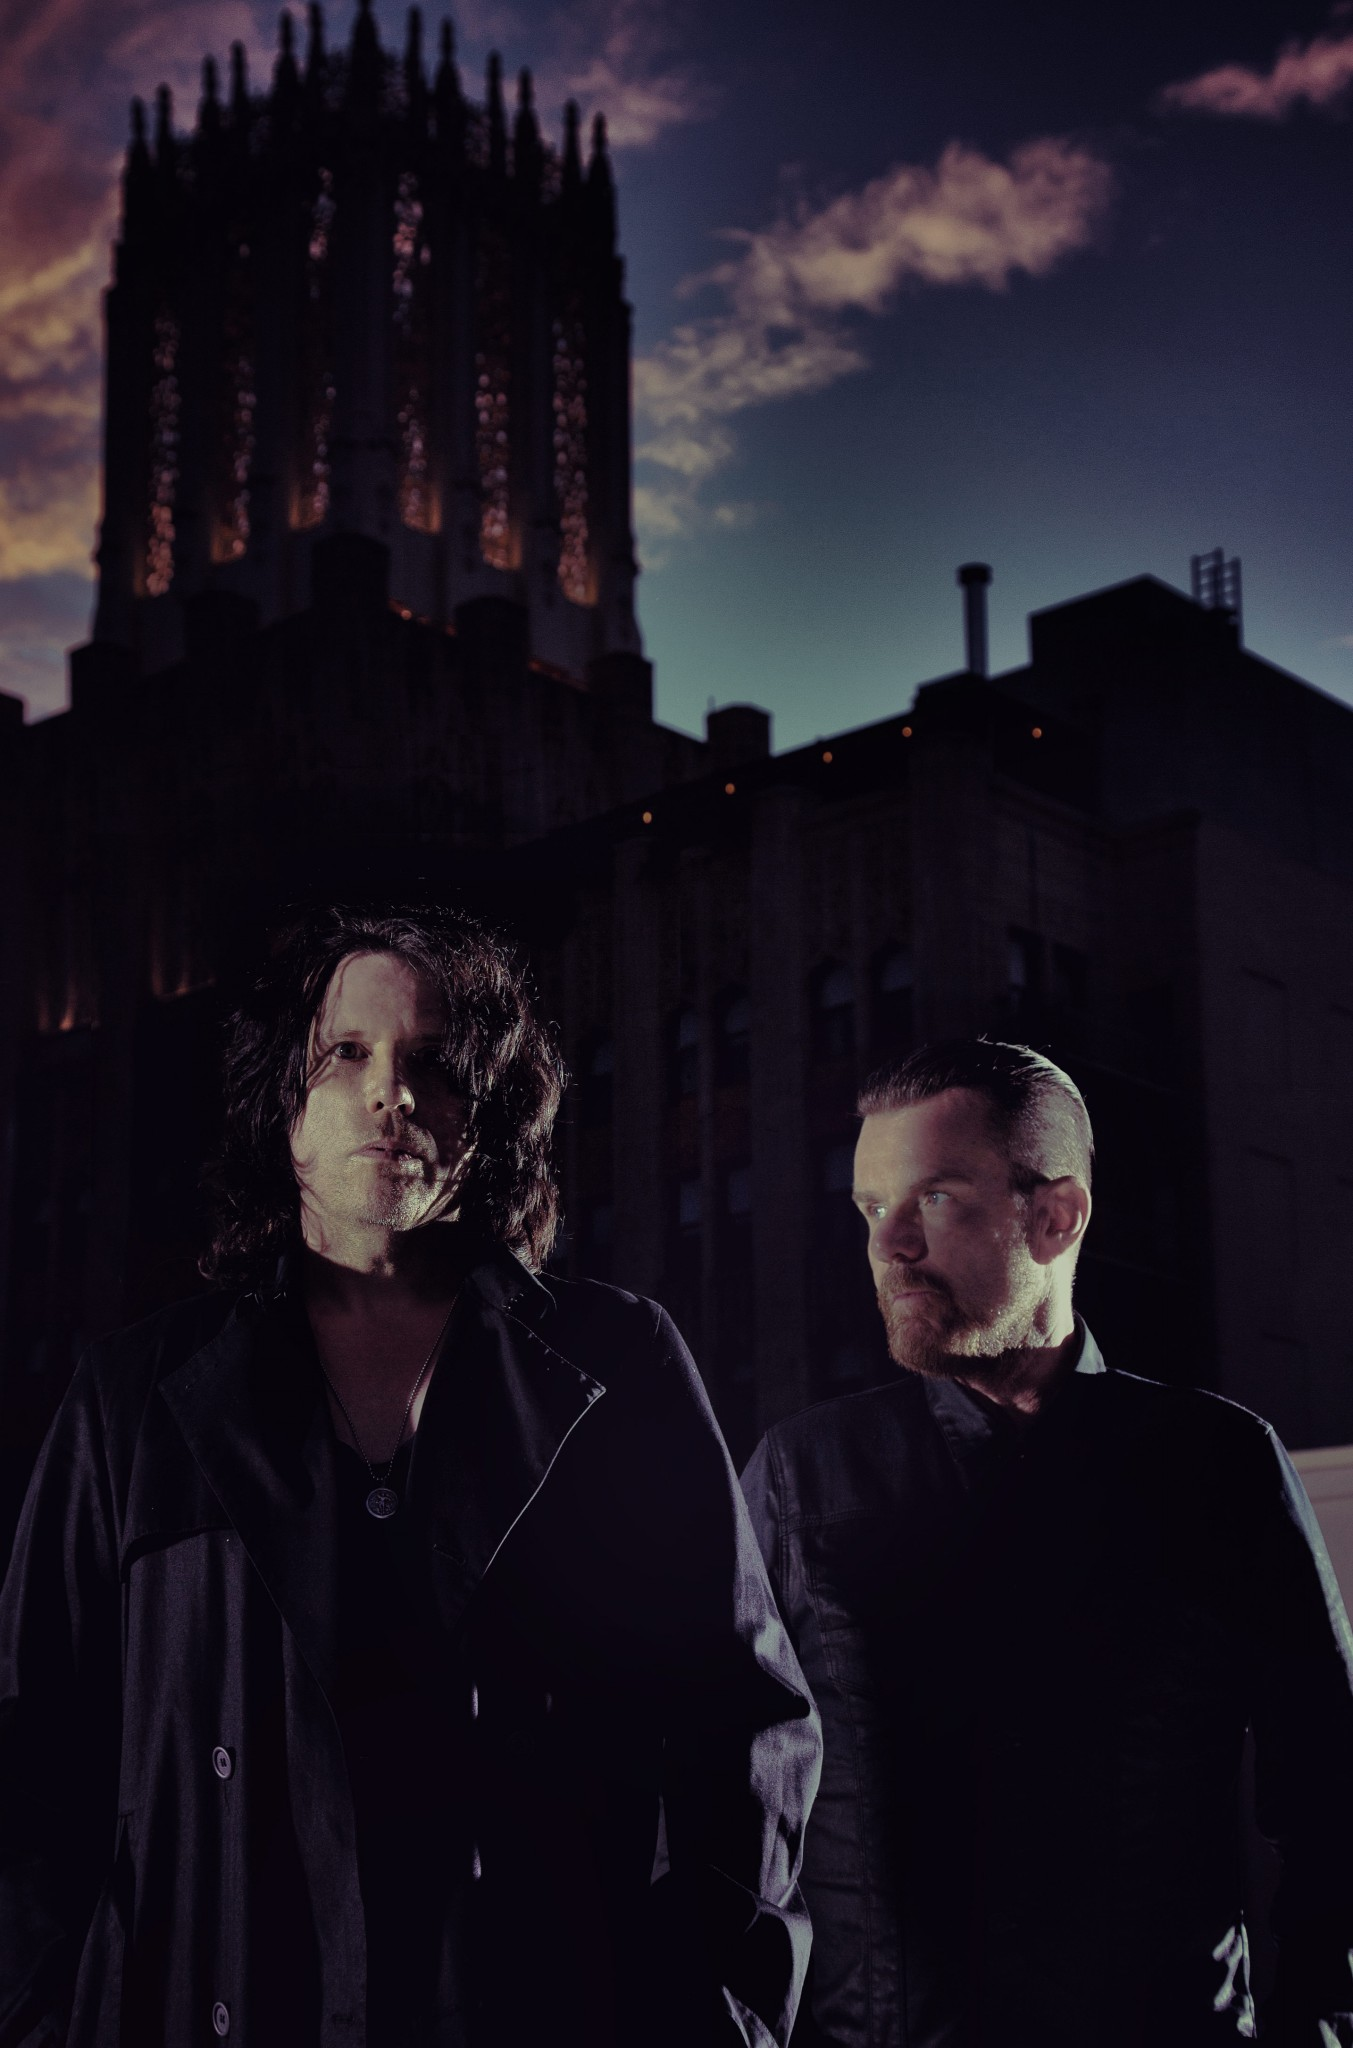 Billy Duffy and Ian Astbury of The Cult stood in front of a dark church – Loaded